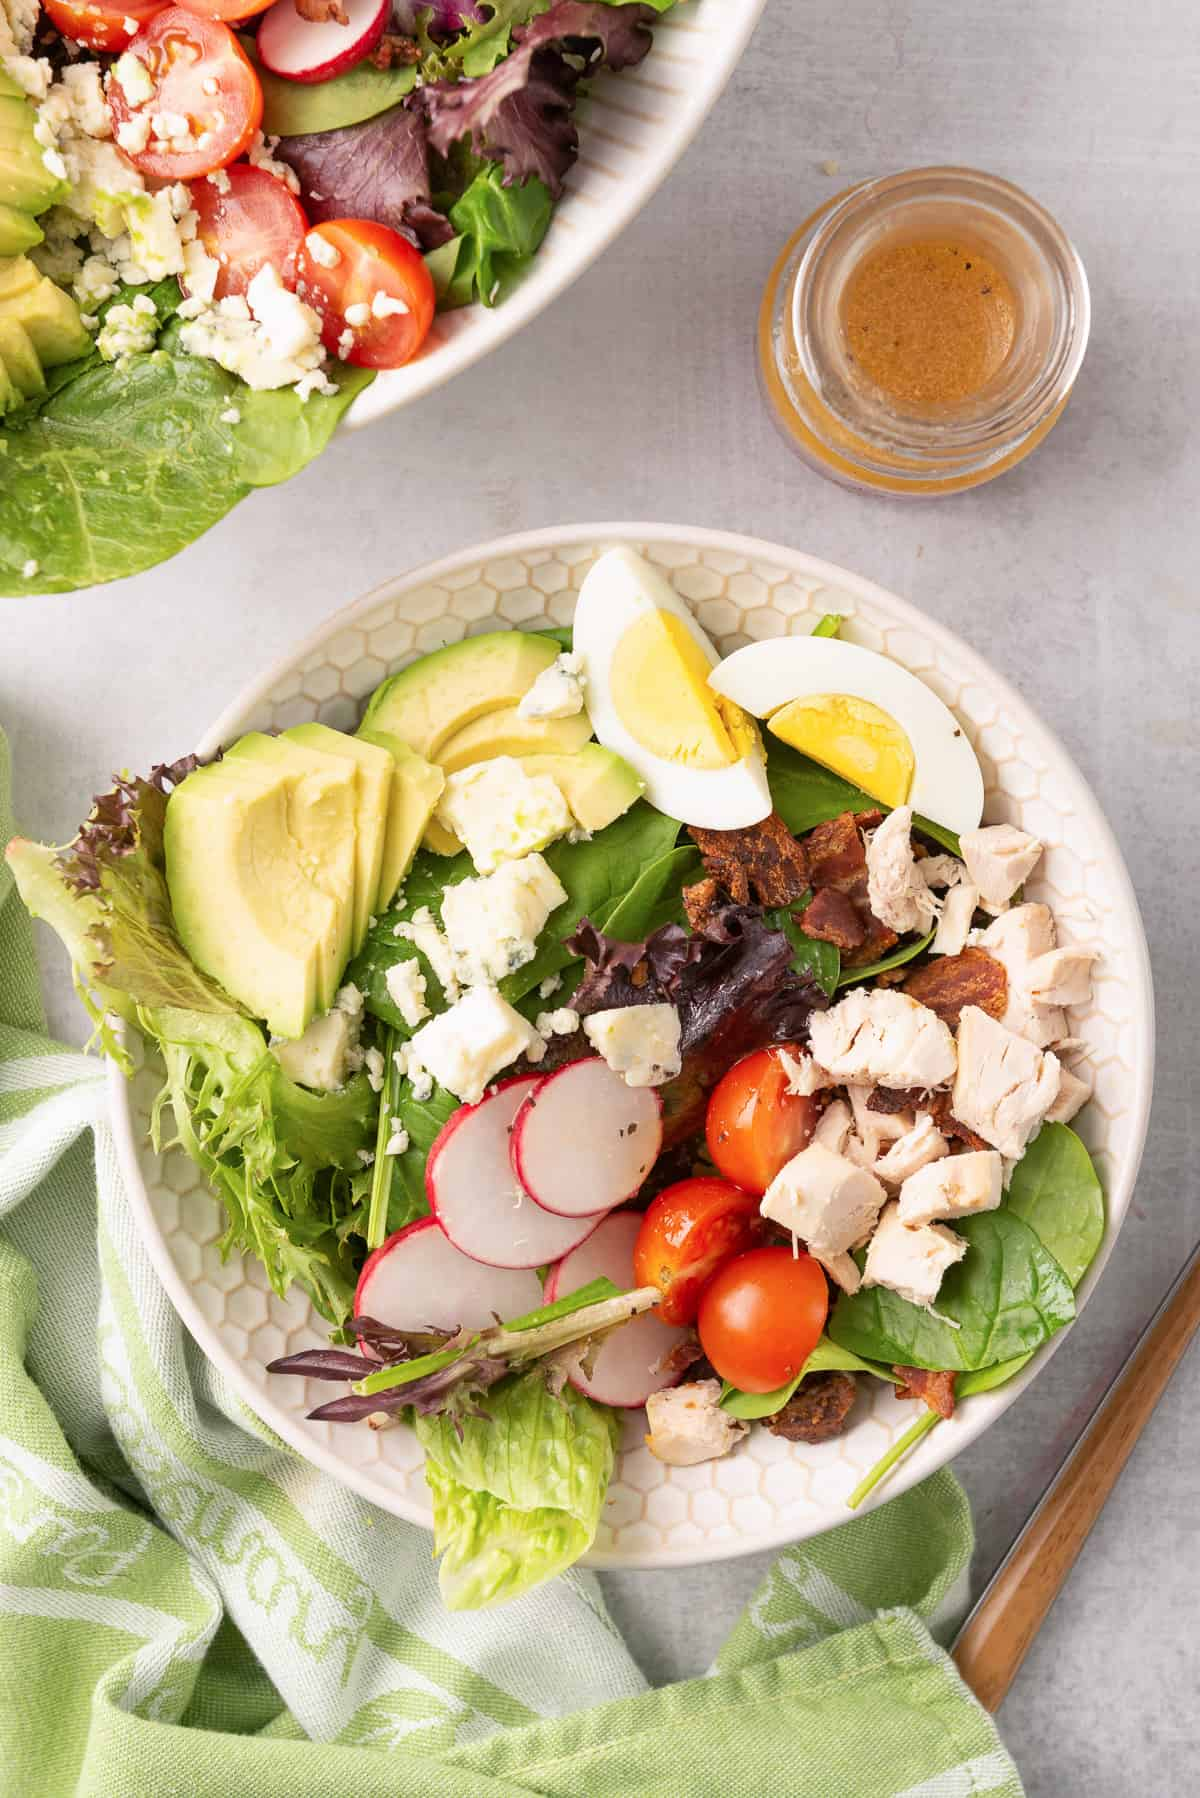 An over the top shot of Chicken Cobb Salad in a white bowl with a green and white cloth.